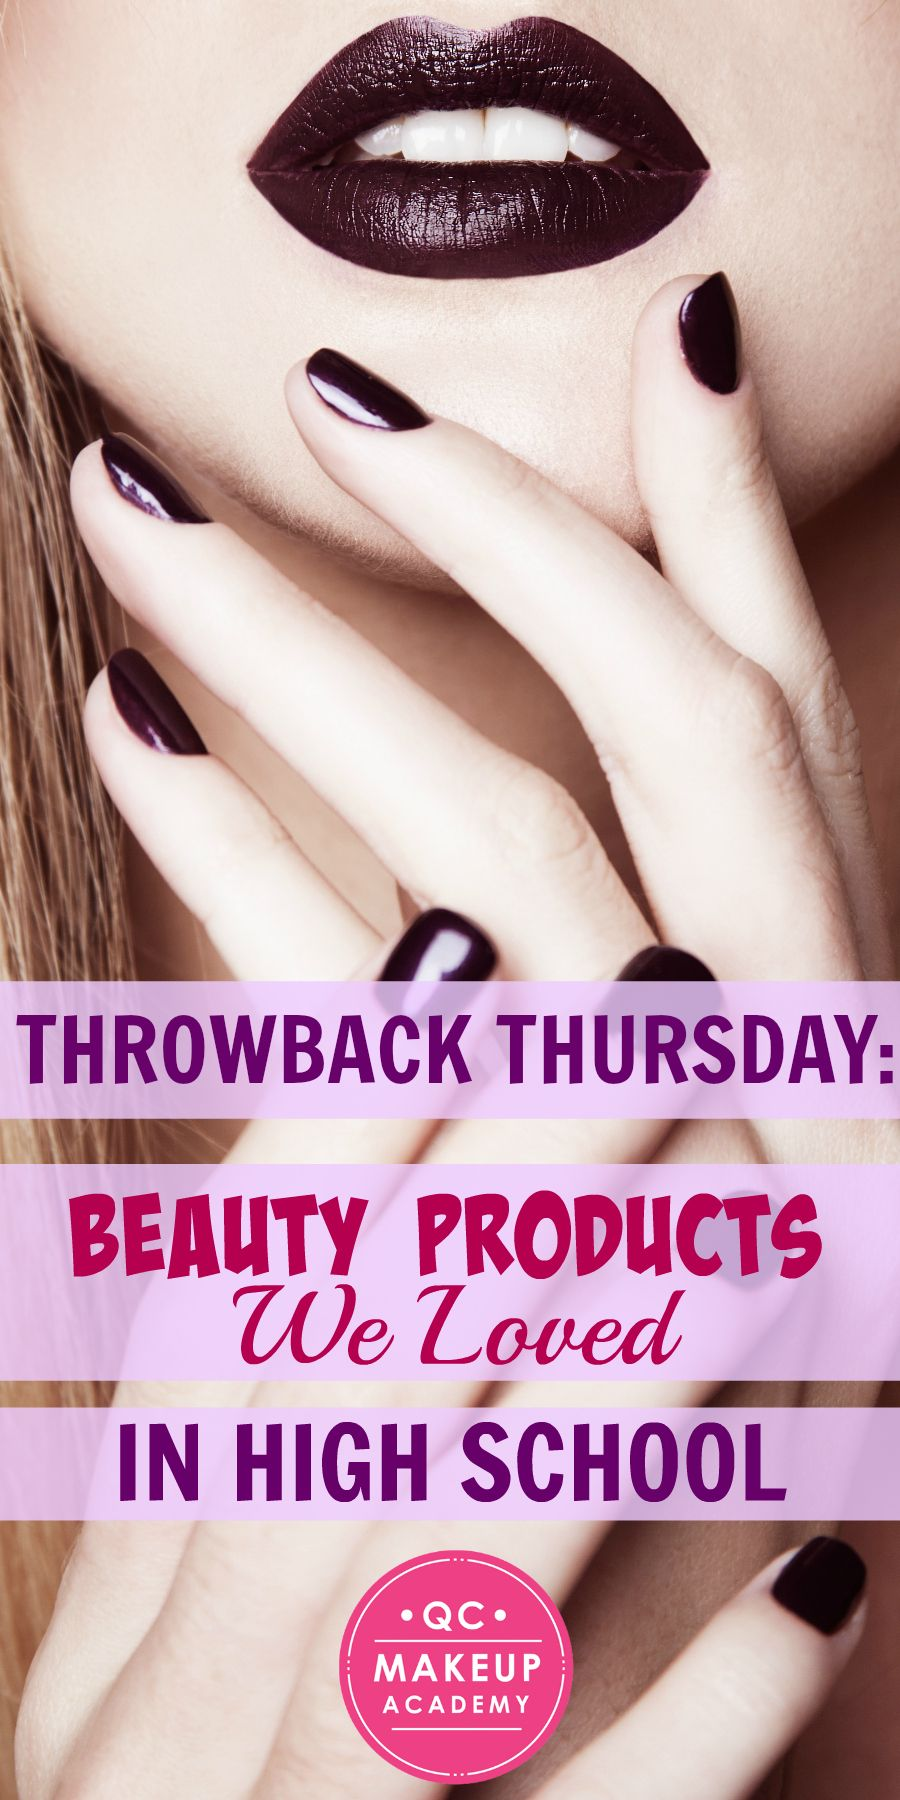 Back in high school, we thought that any product we could get our hands on was a winner, even when it wasn't! As a special #ThrowbackThursday treat, let's take a walk down memory lane and reminisce about the products we used to love! #QCMakeupAcademy #makeup #retromakeup #tbt #throwback #highschool #memories #makeupartist #makeupproducts #products #inspiration #makeupschool